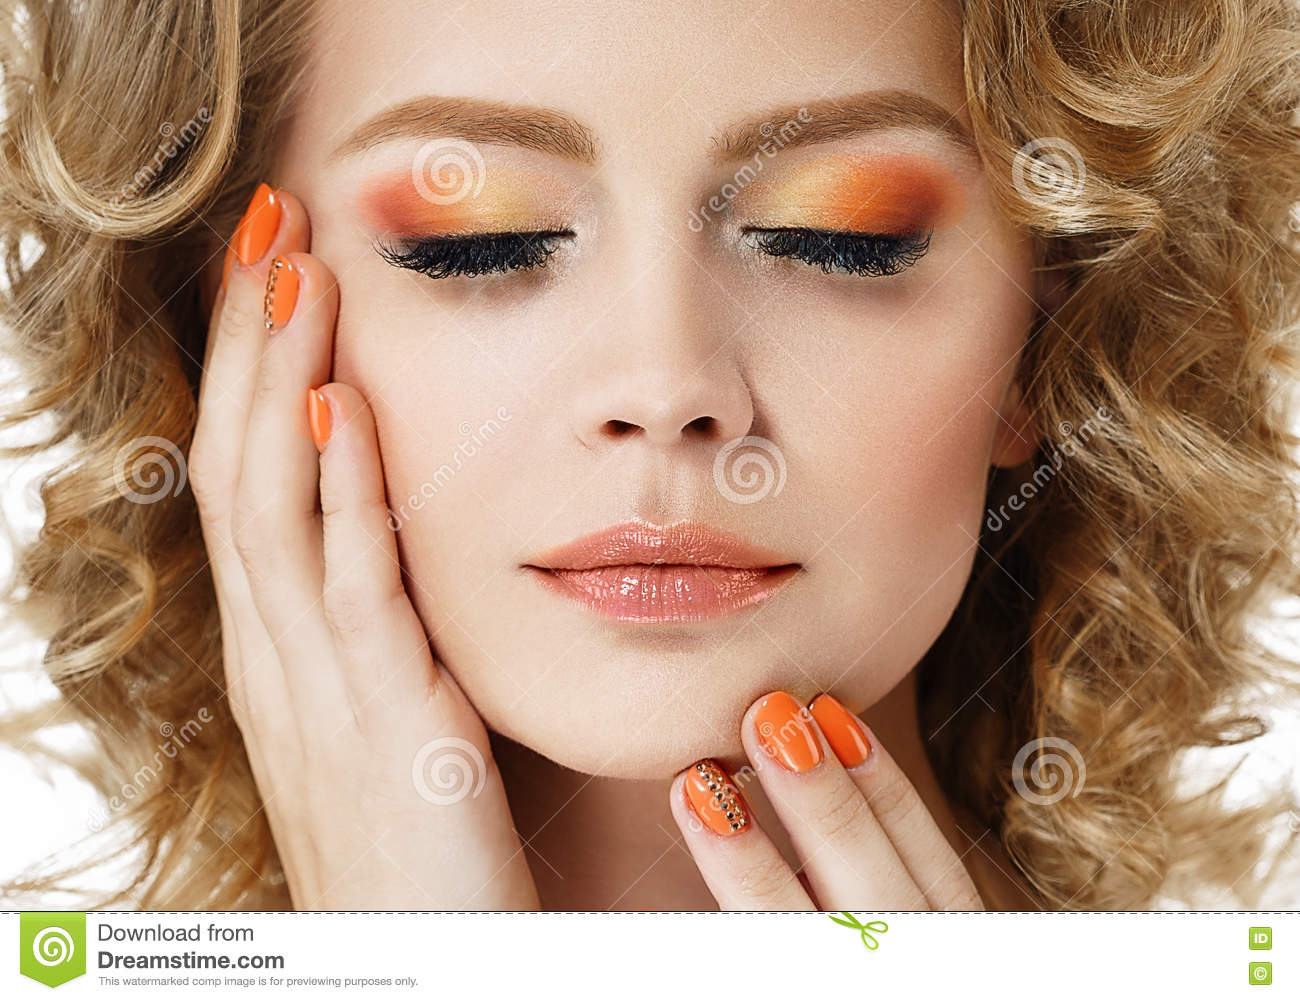 Colorful make up shadows and nails woman beauty portrait isolated on white